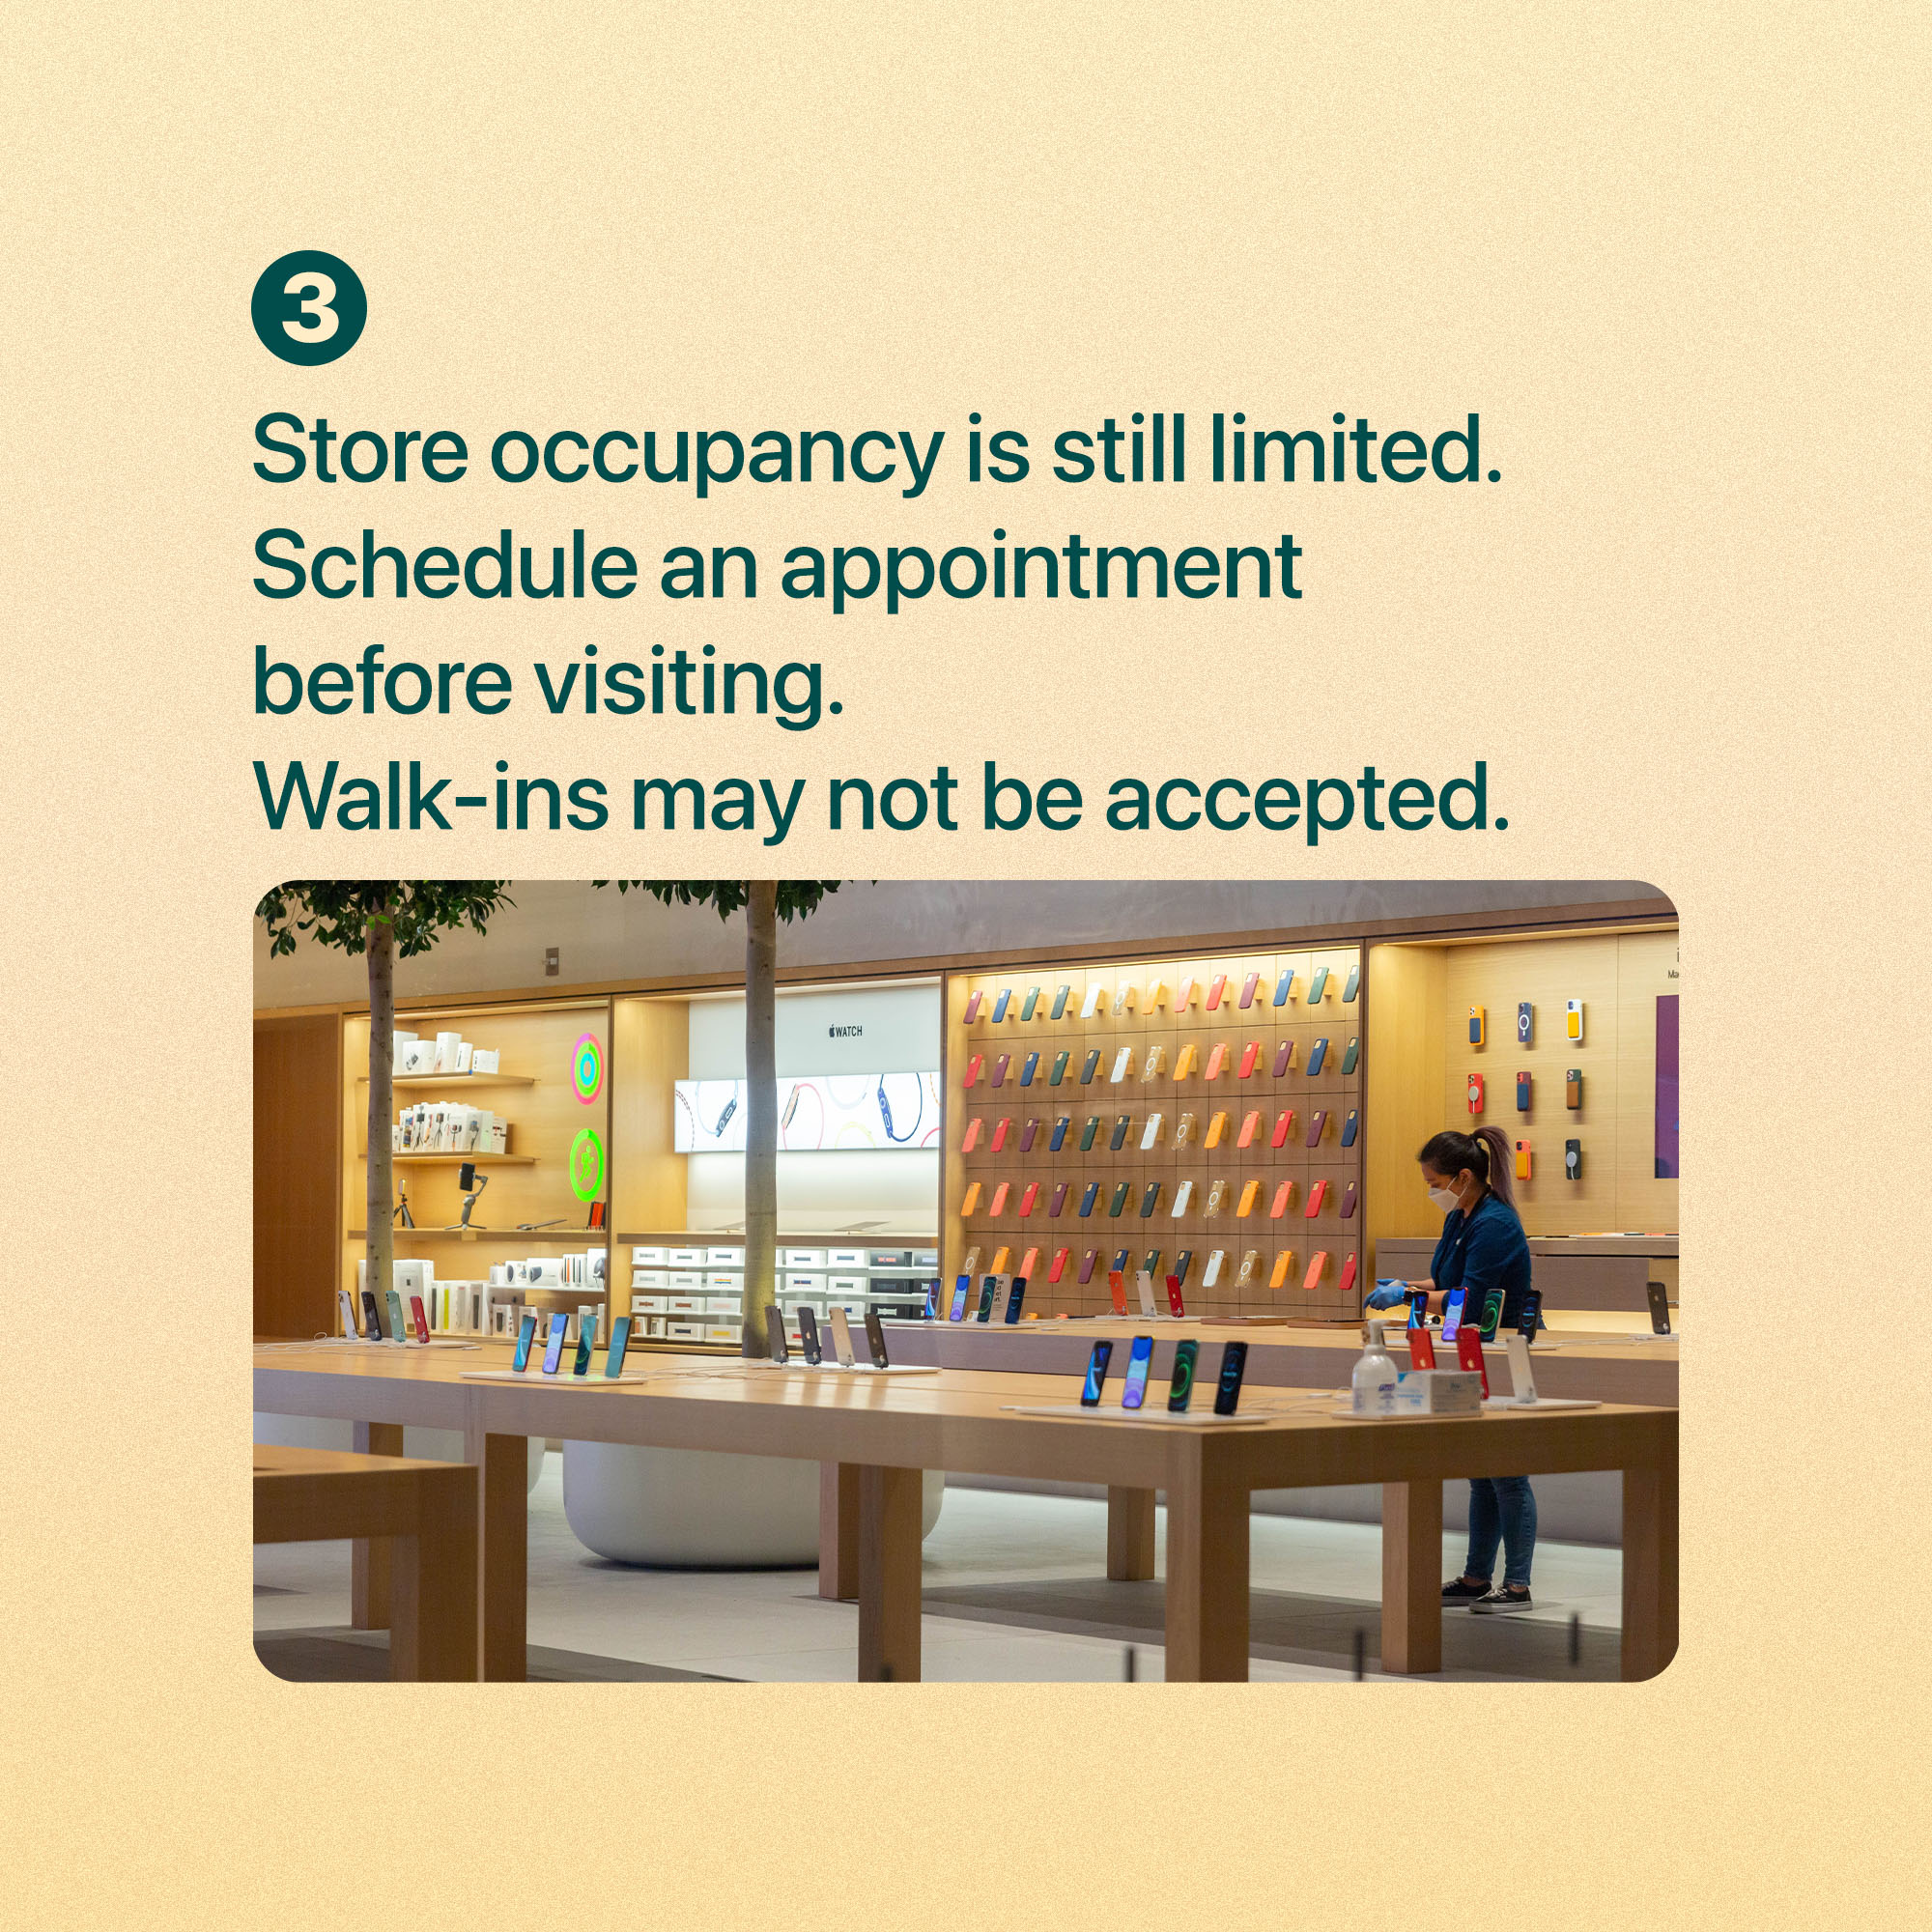 Store occupancy is still limited. Schedule an appointment before visiting. Walk-ins may not be accepted.